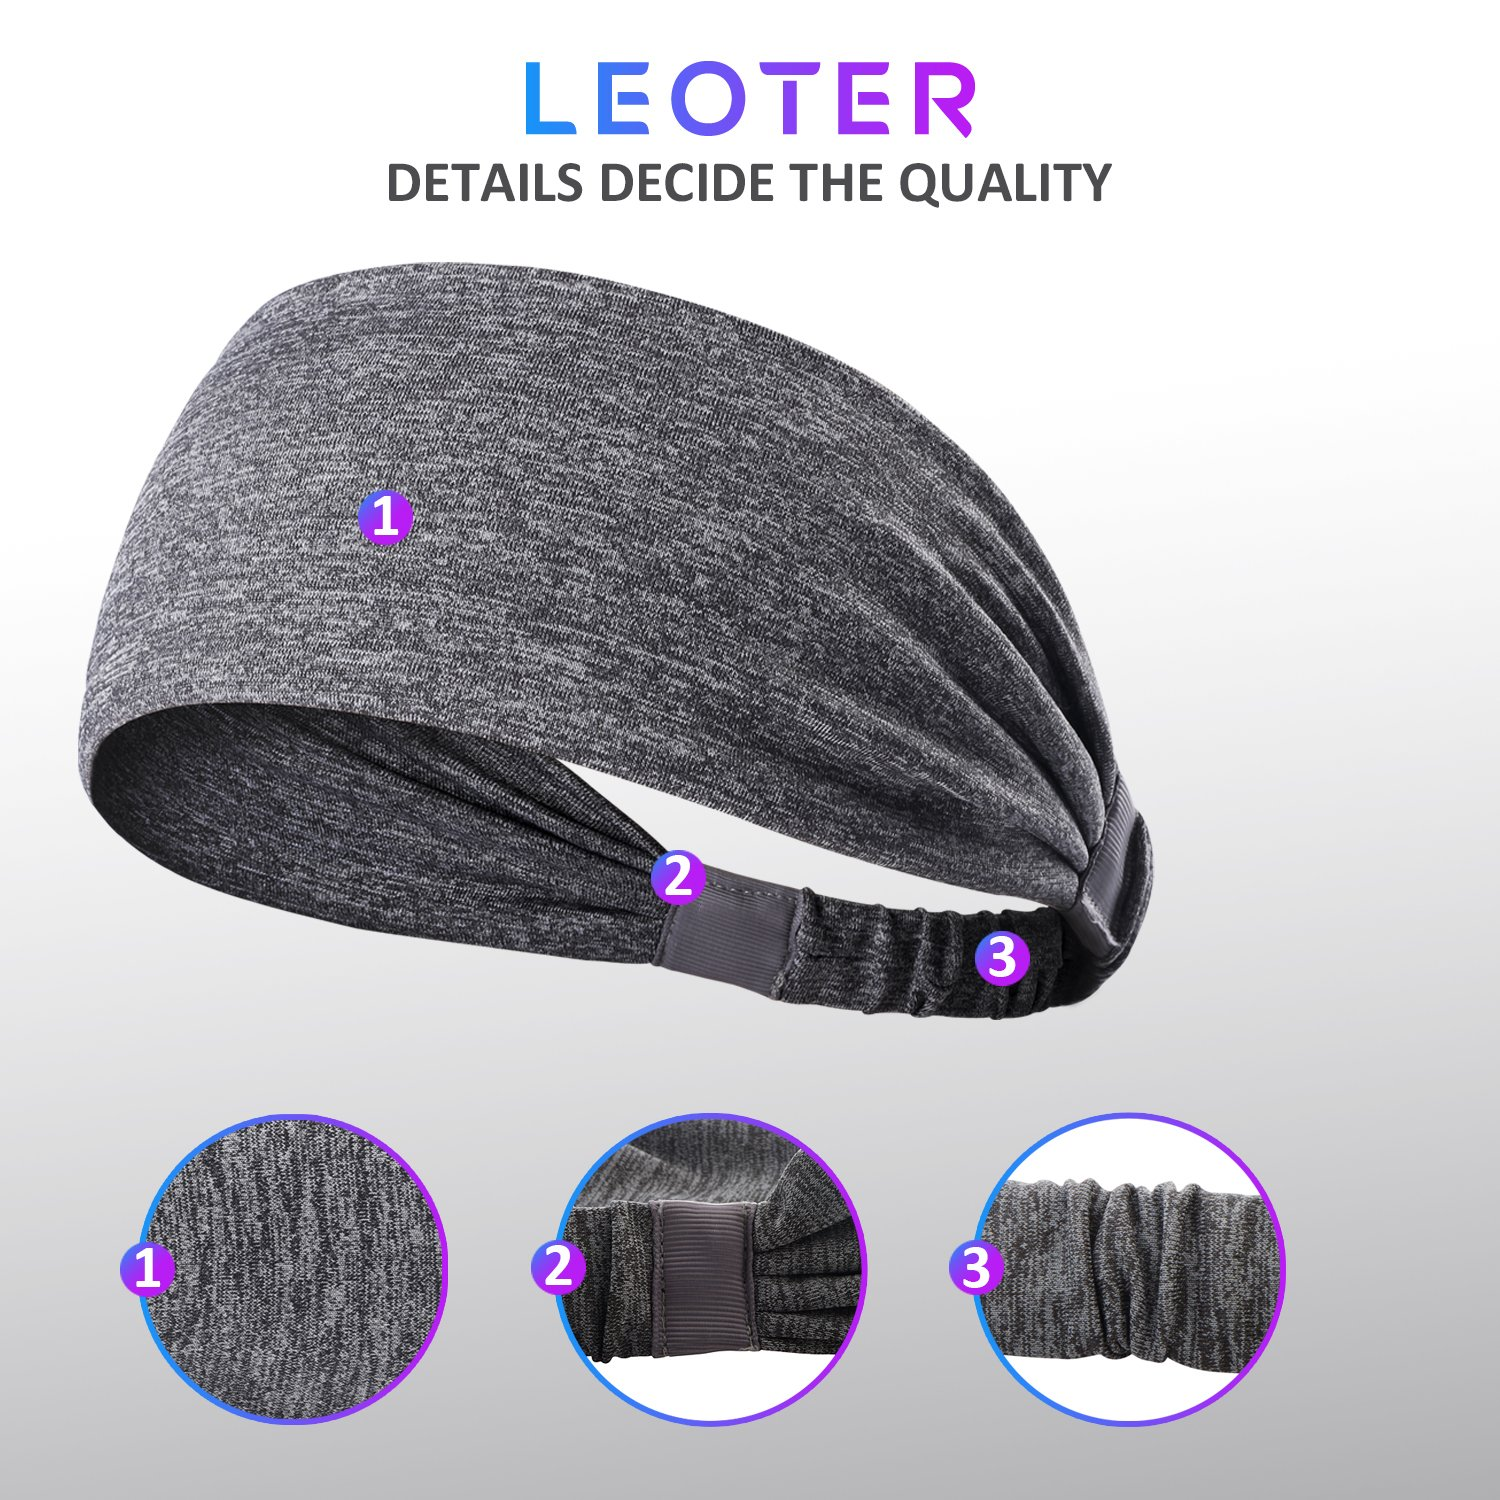 6 Pieces Sport Headband Yoga/Cycling/Running /Fitness ExerciseHairband Elastic Sweatband for Unisex by Leoter (Image #3)